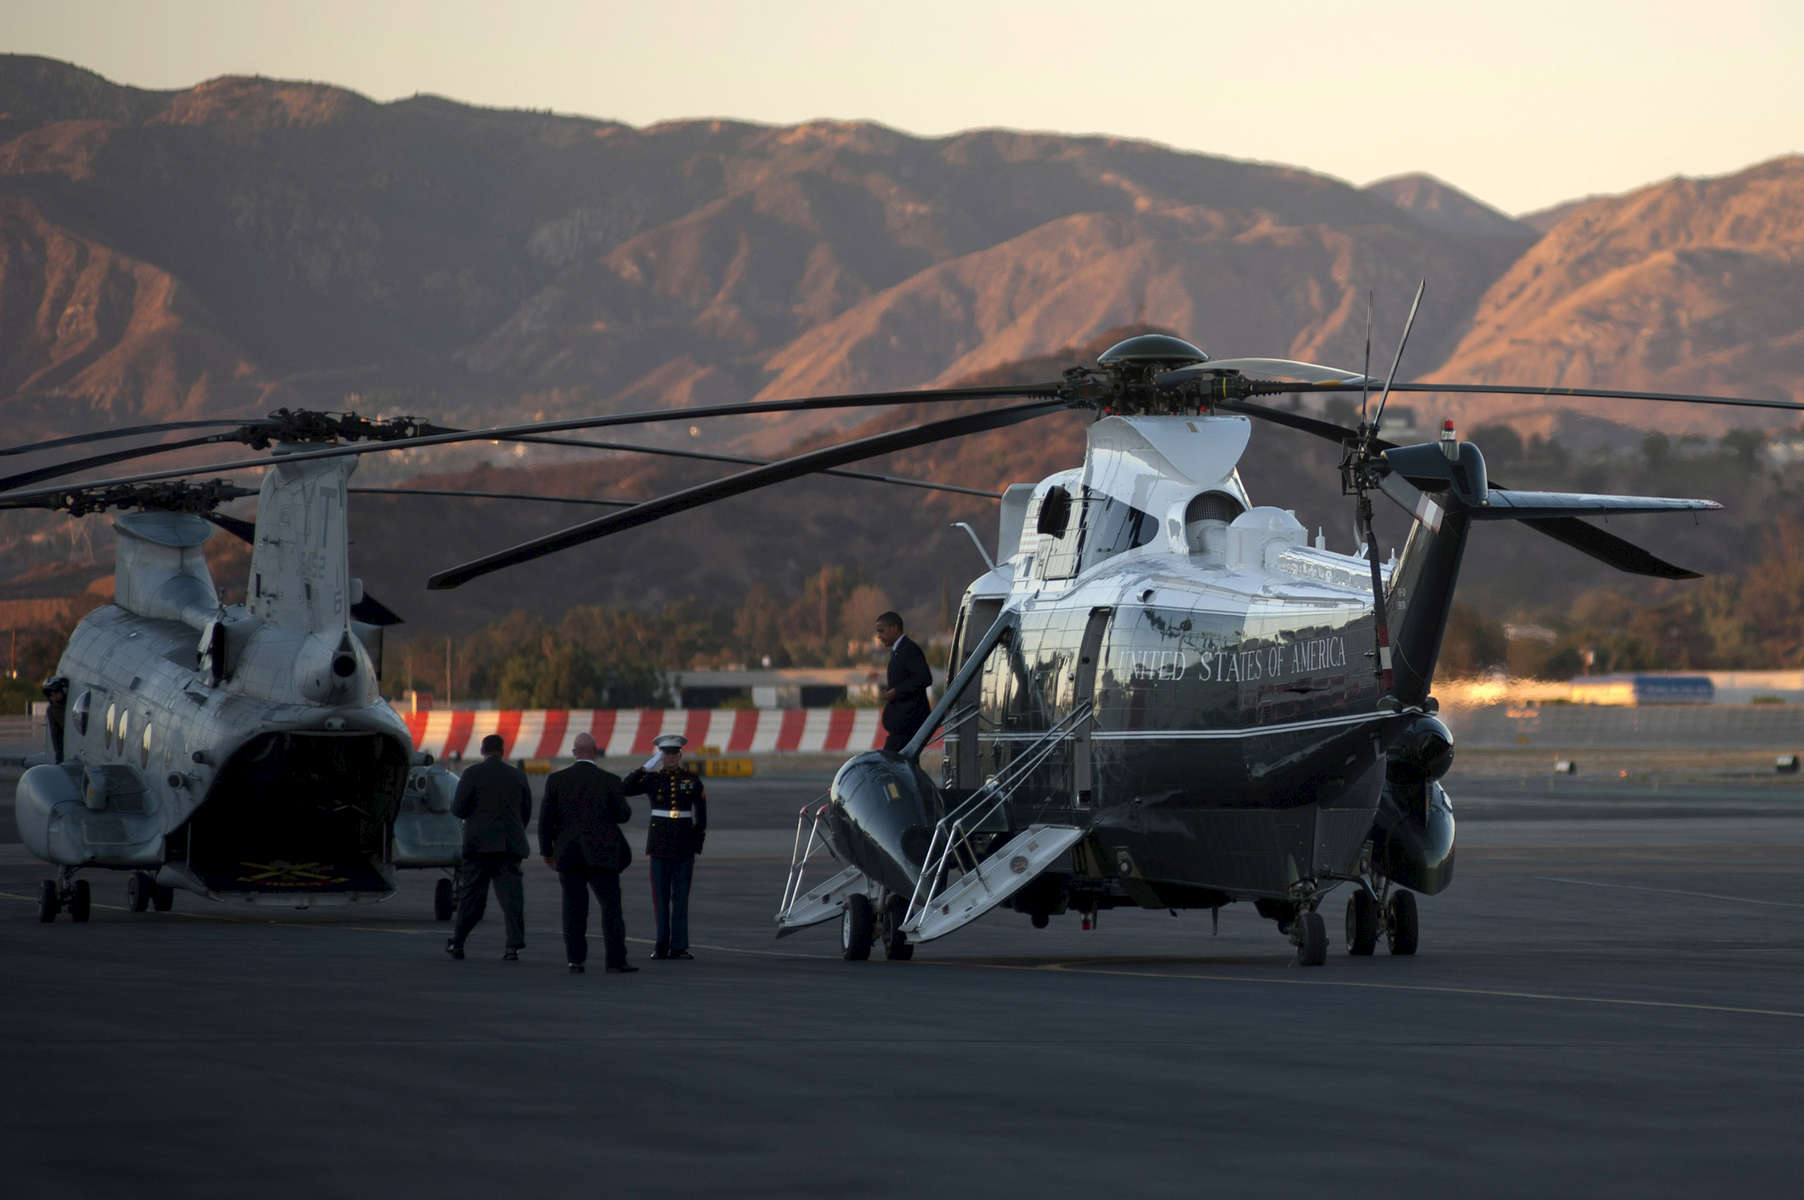 October 24, 2012 - Burbank, CA: President Barack Obama disembarks from Marine One at Burbank Airport en route to the Tonight Show with Jay Leno. (Scout Tufankjian for Obama for America/Polaris)